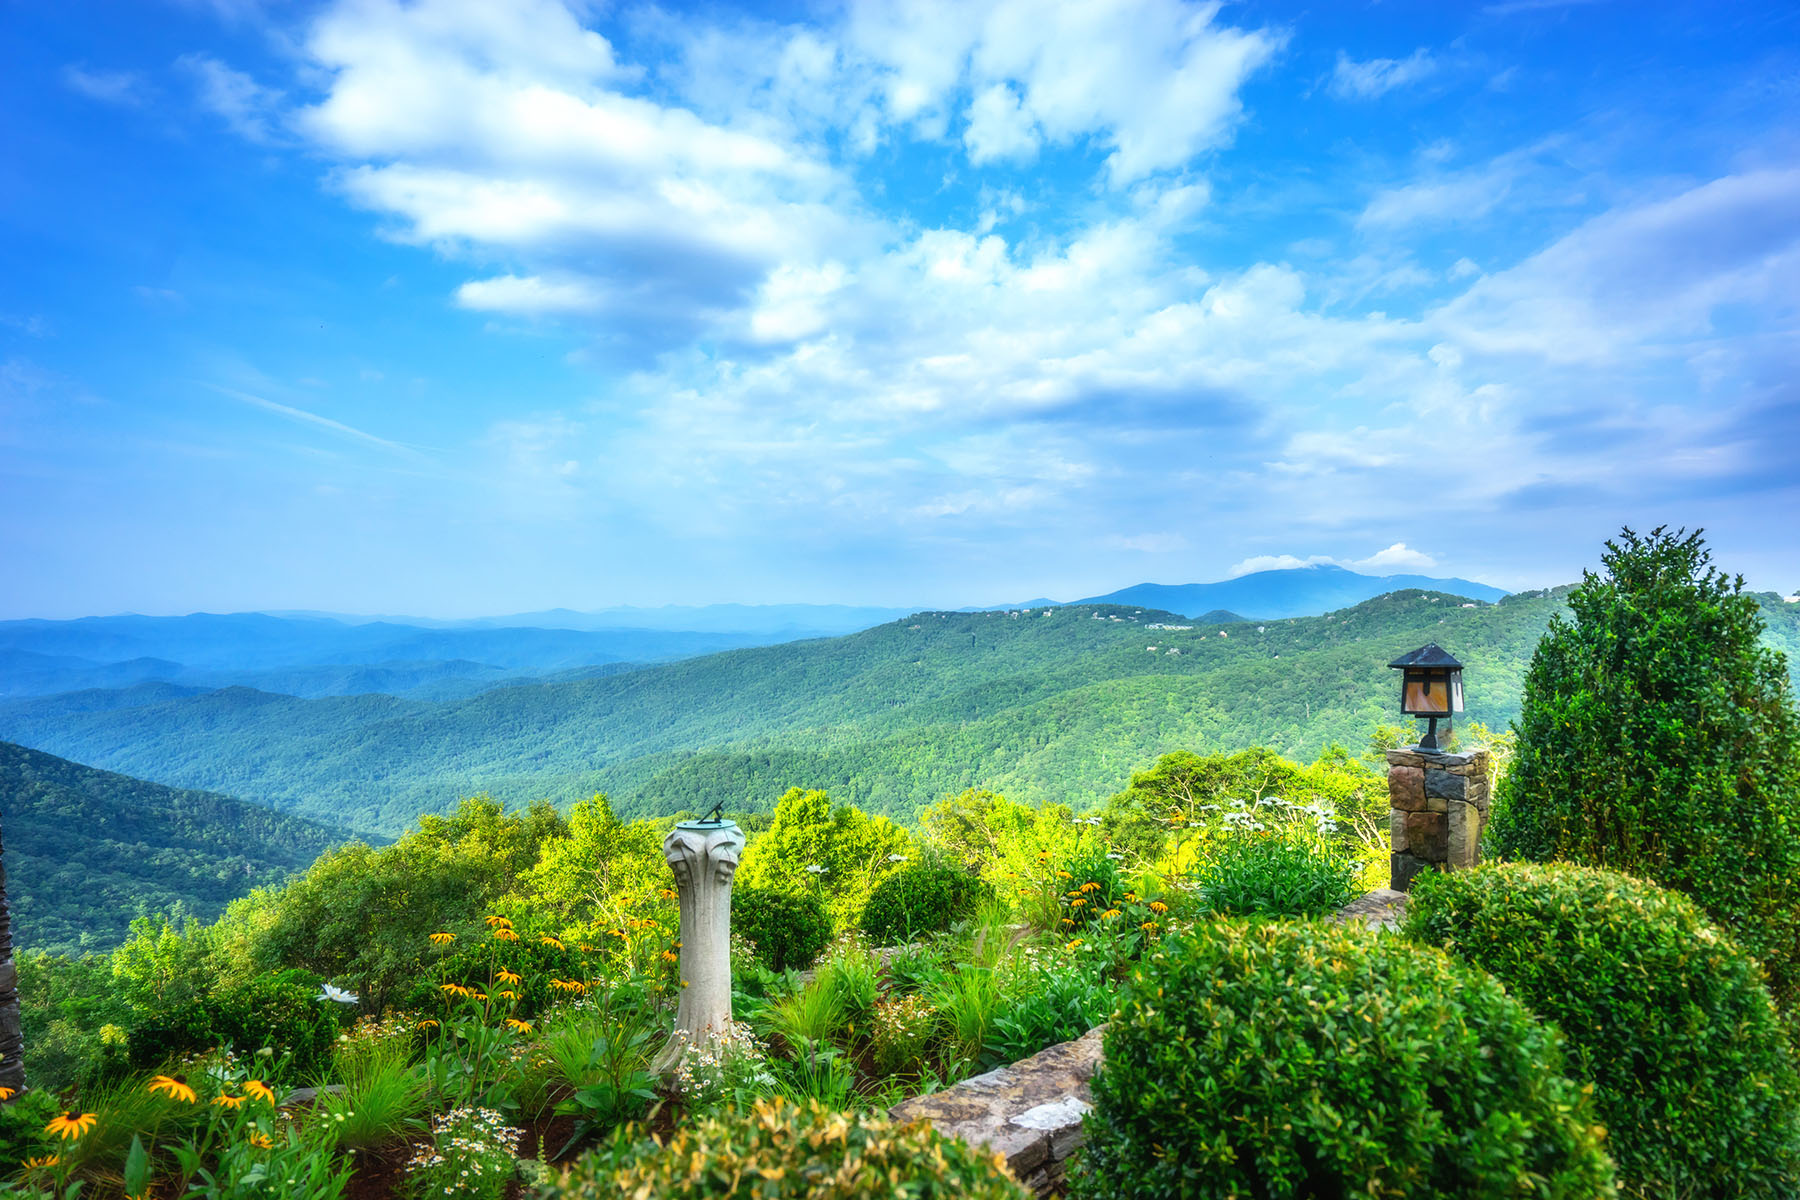 Single Family Homes for Sale at MAYVIEW - BLOWING ROCK 1245 Laurel Ln Blowing Rock, North Carolina 28605 United States